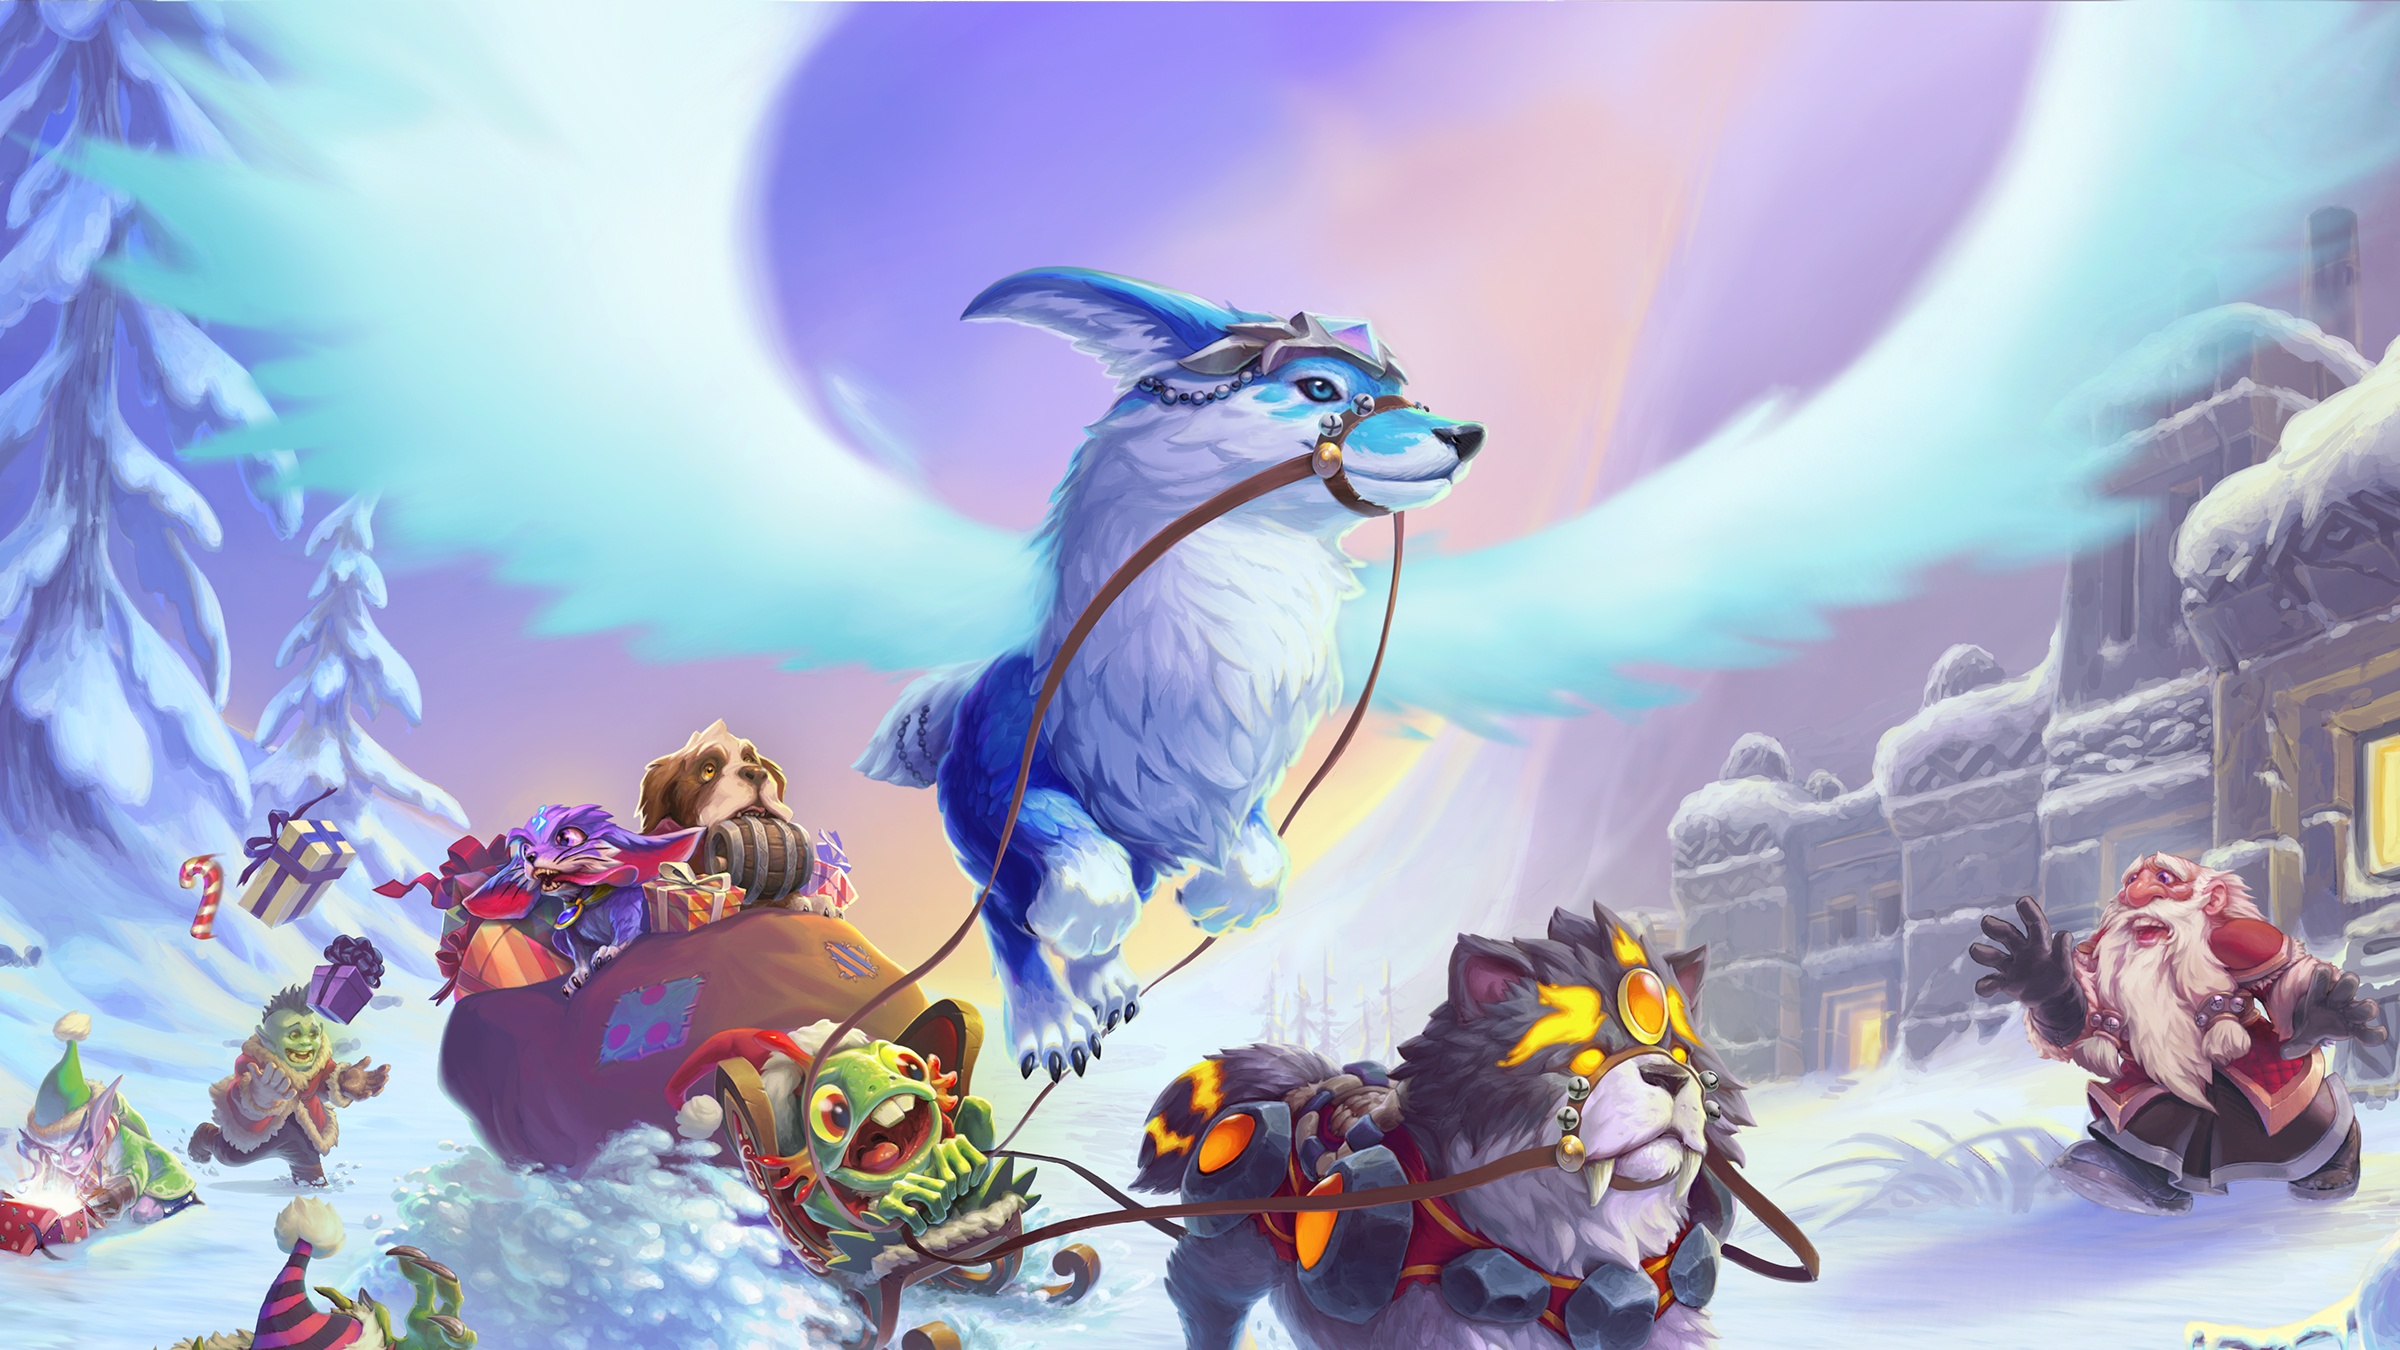 Save Big on Character Boosts, Pets, Mounts, and More During Our Holiday Sale